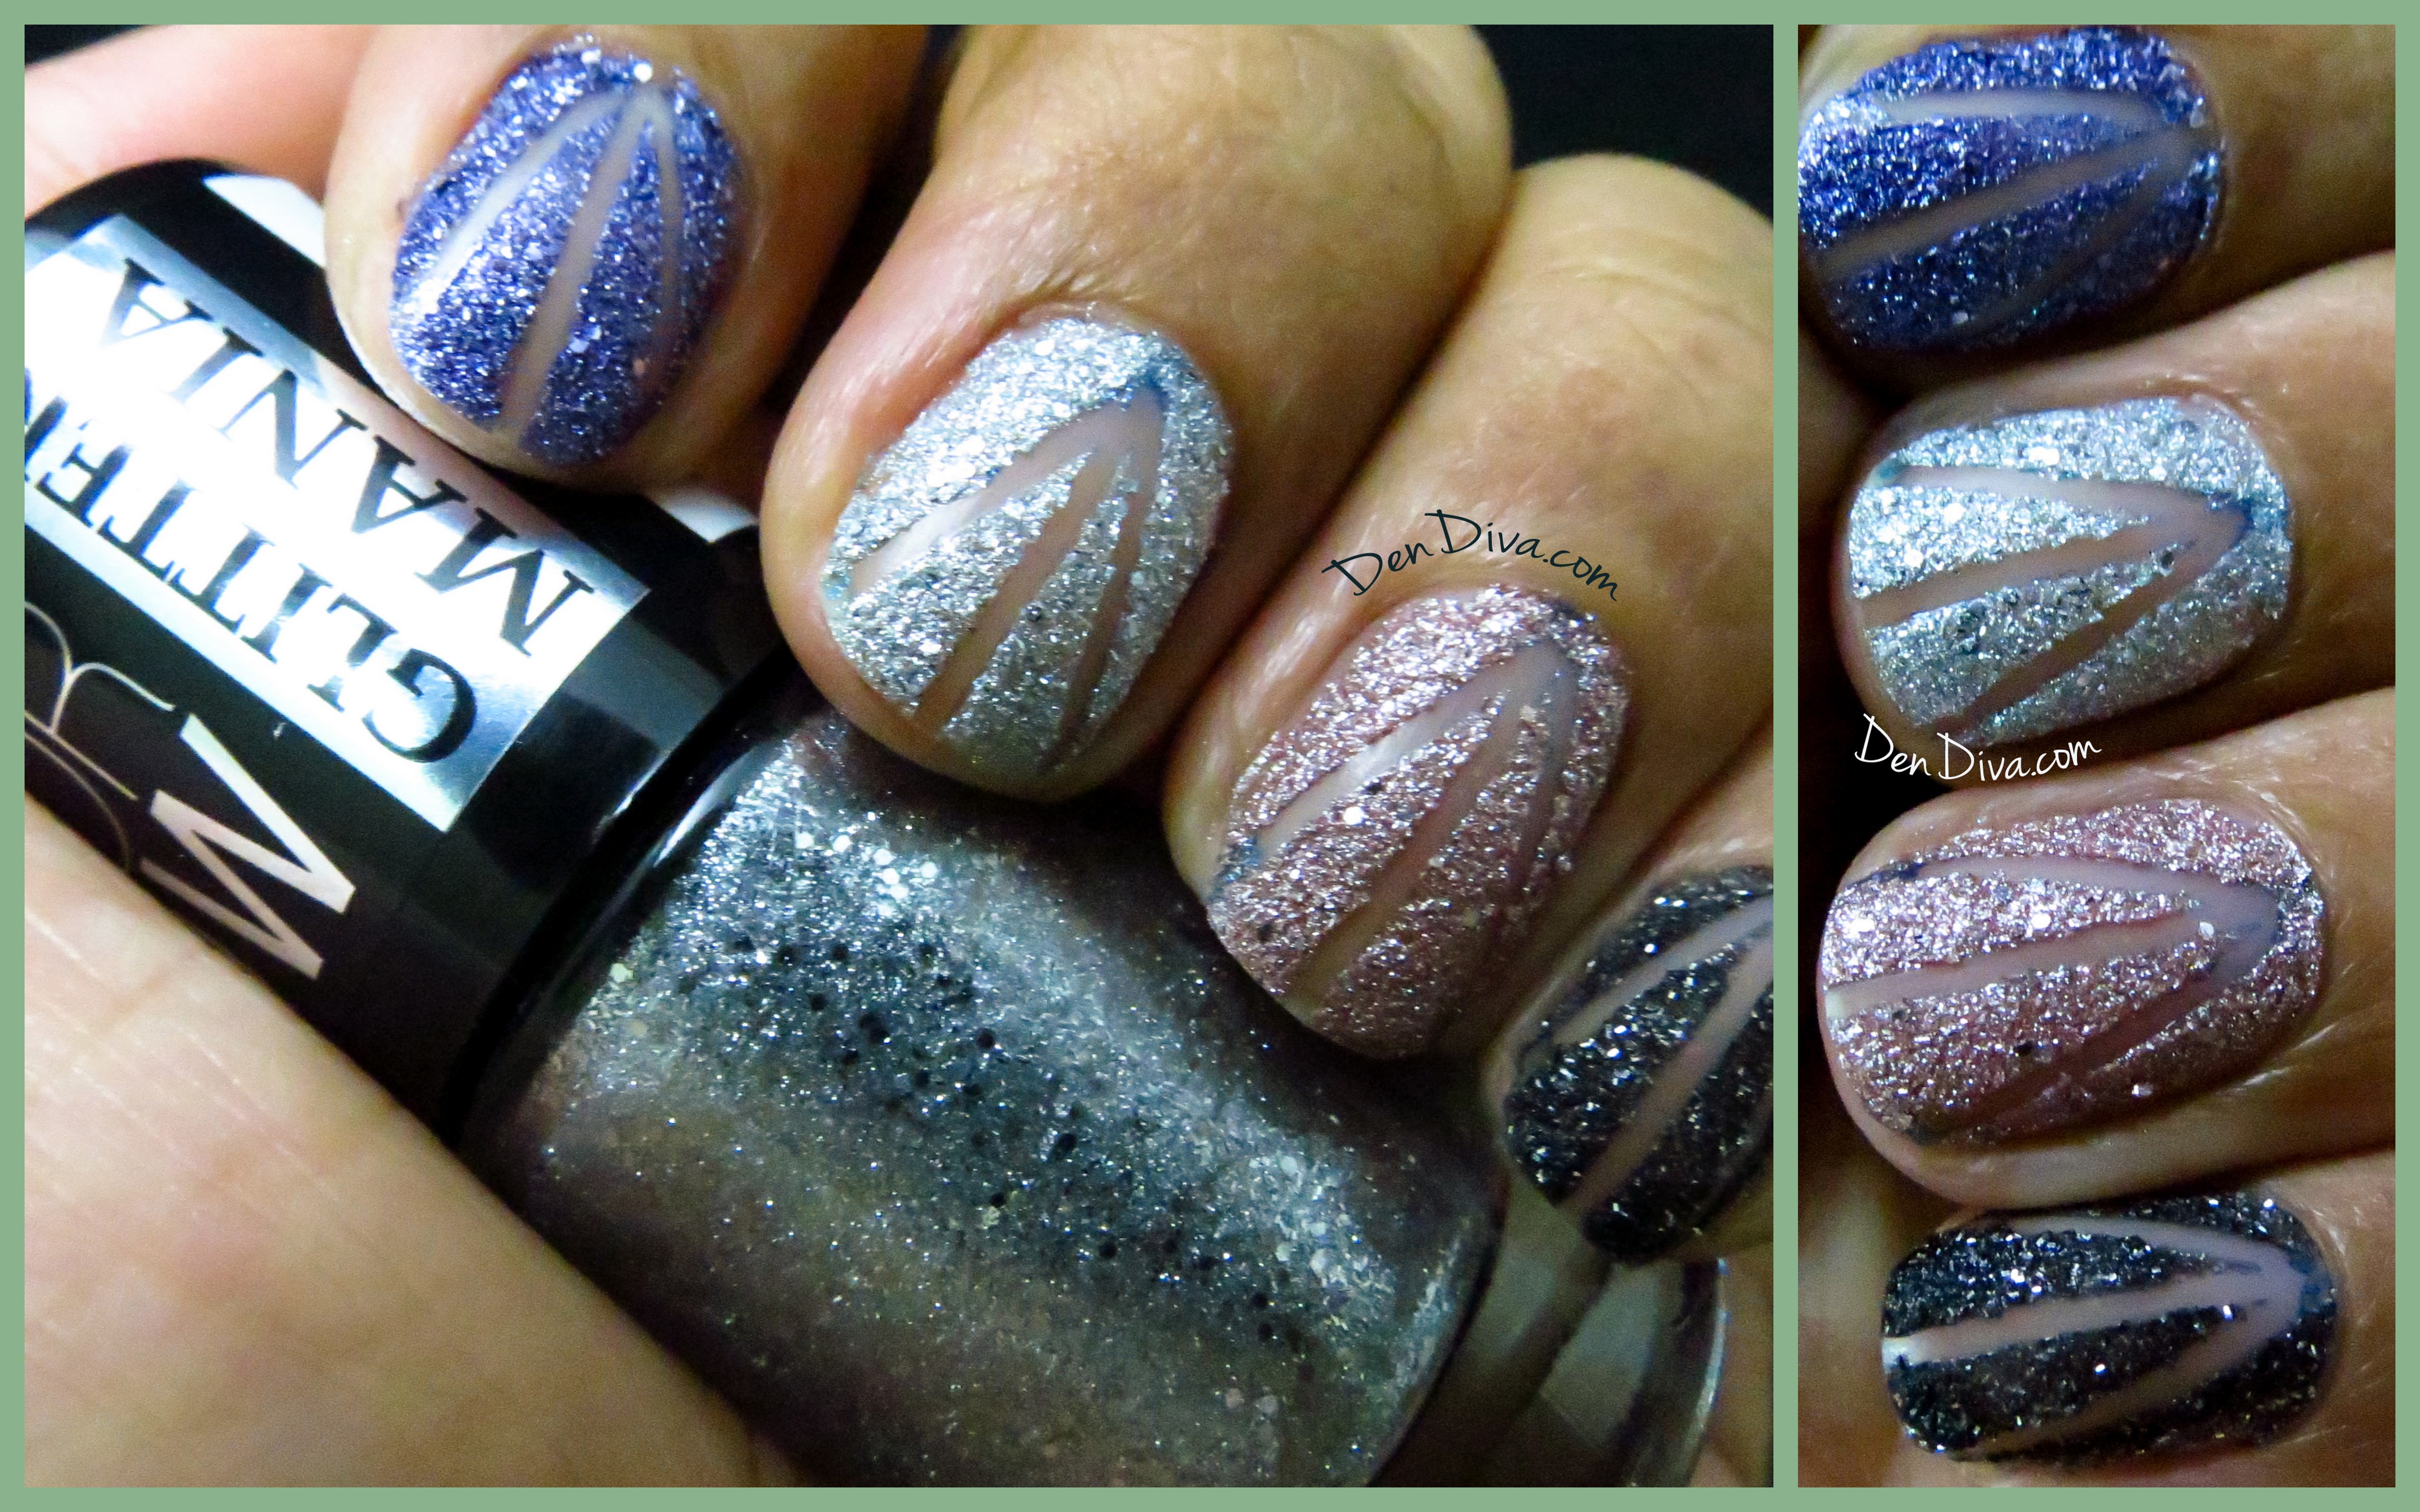 Maybelline Glitter Mania Review & Swatches